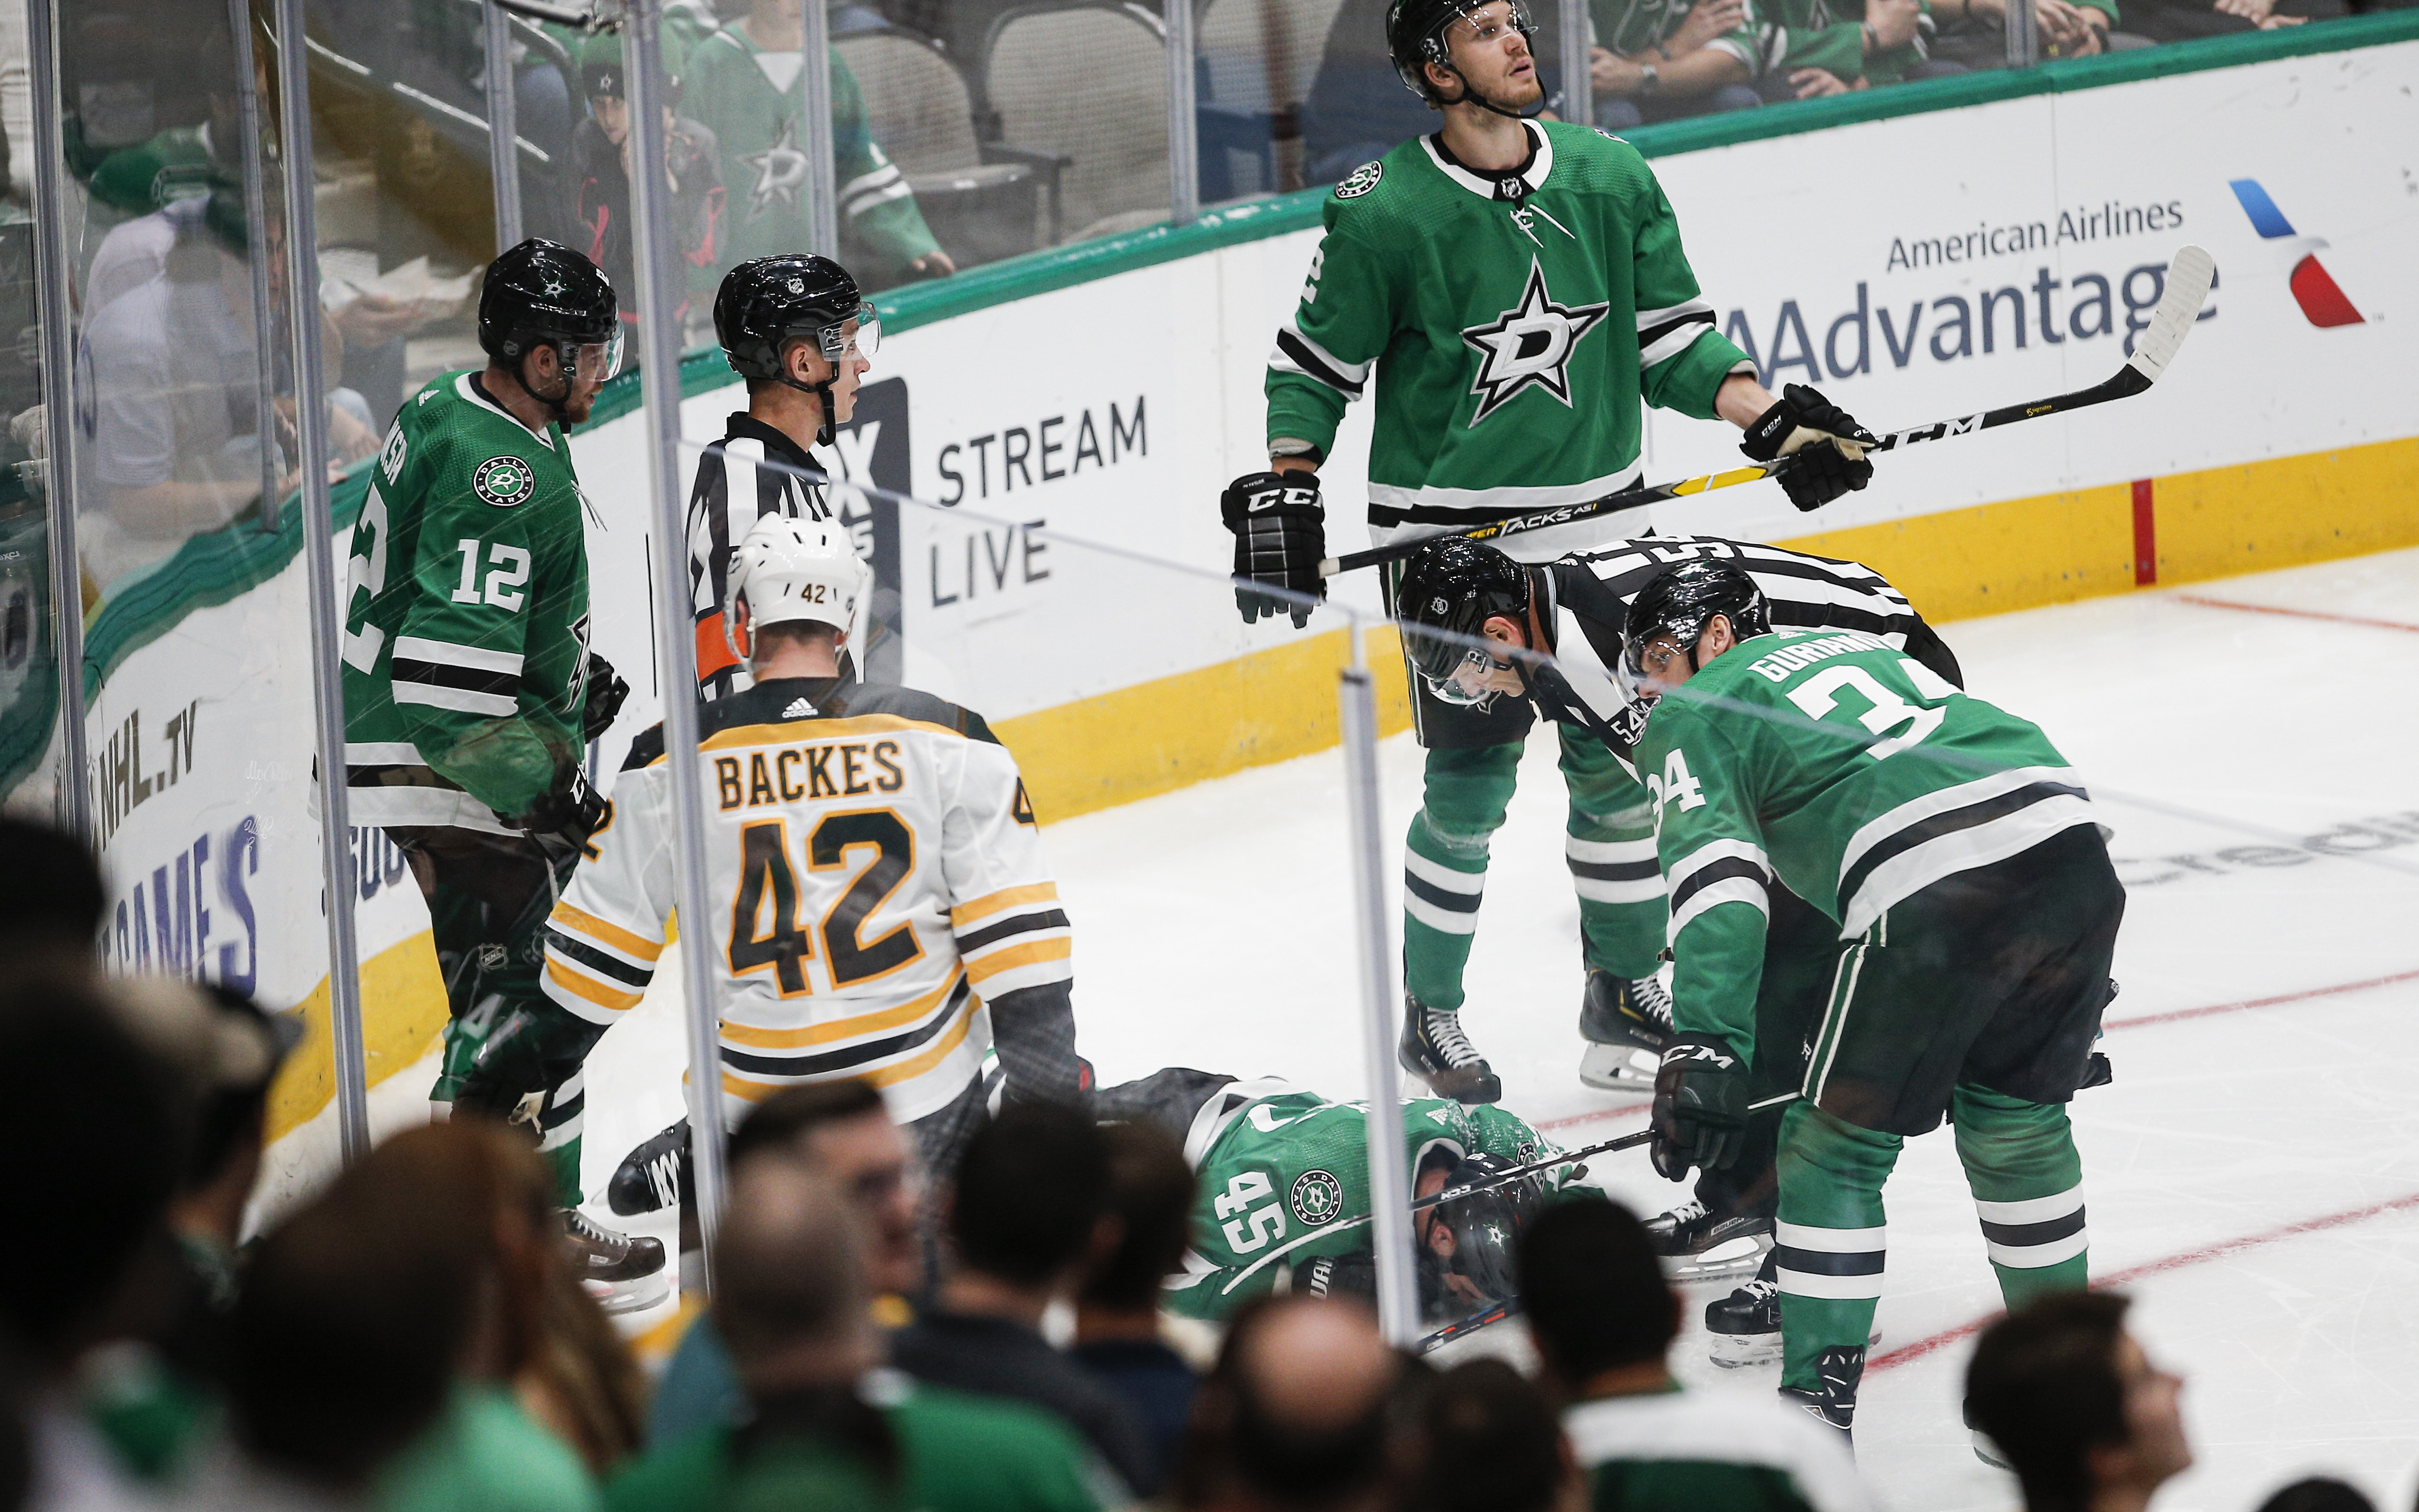 Stars' Polak has fracture in sternum after going into boards